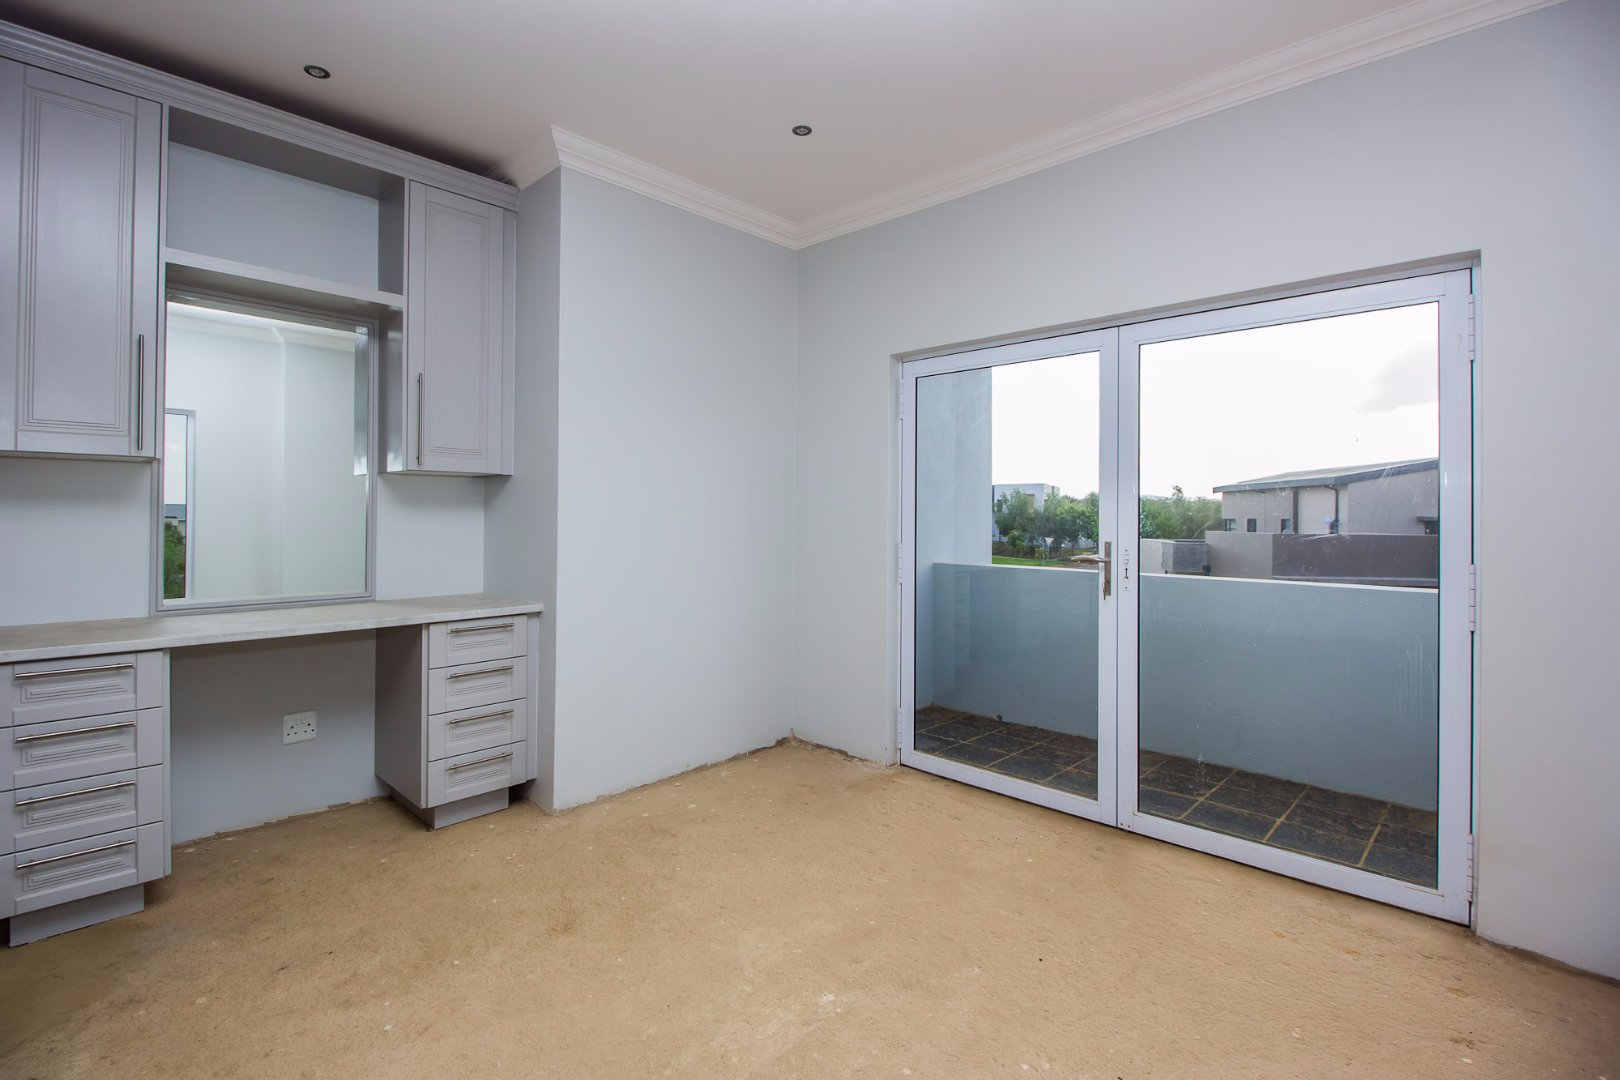 Hazeldean property for sale. Ref No: 13540485. Picture no 13